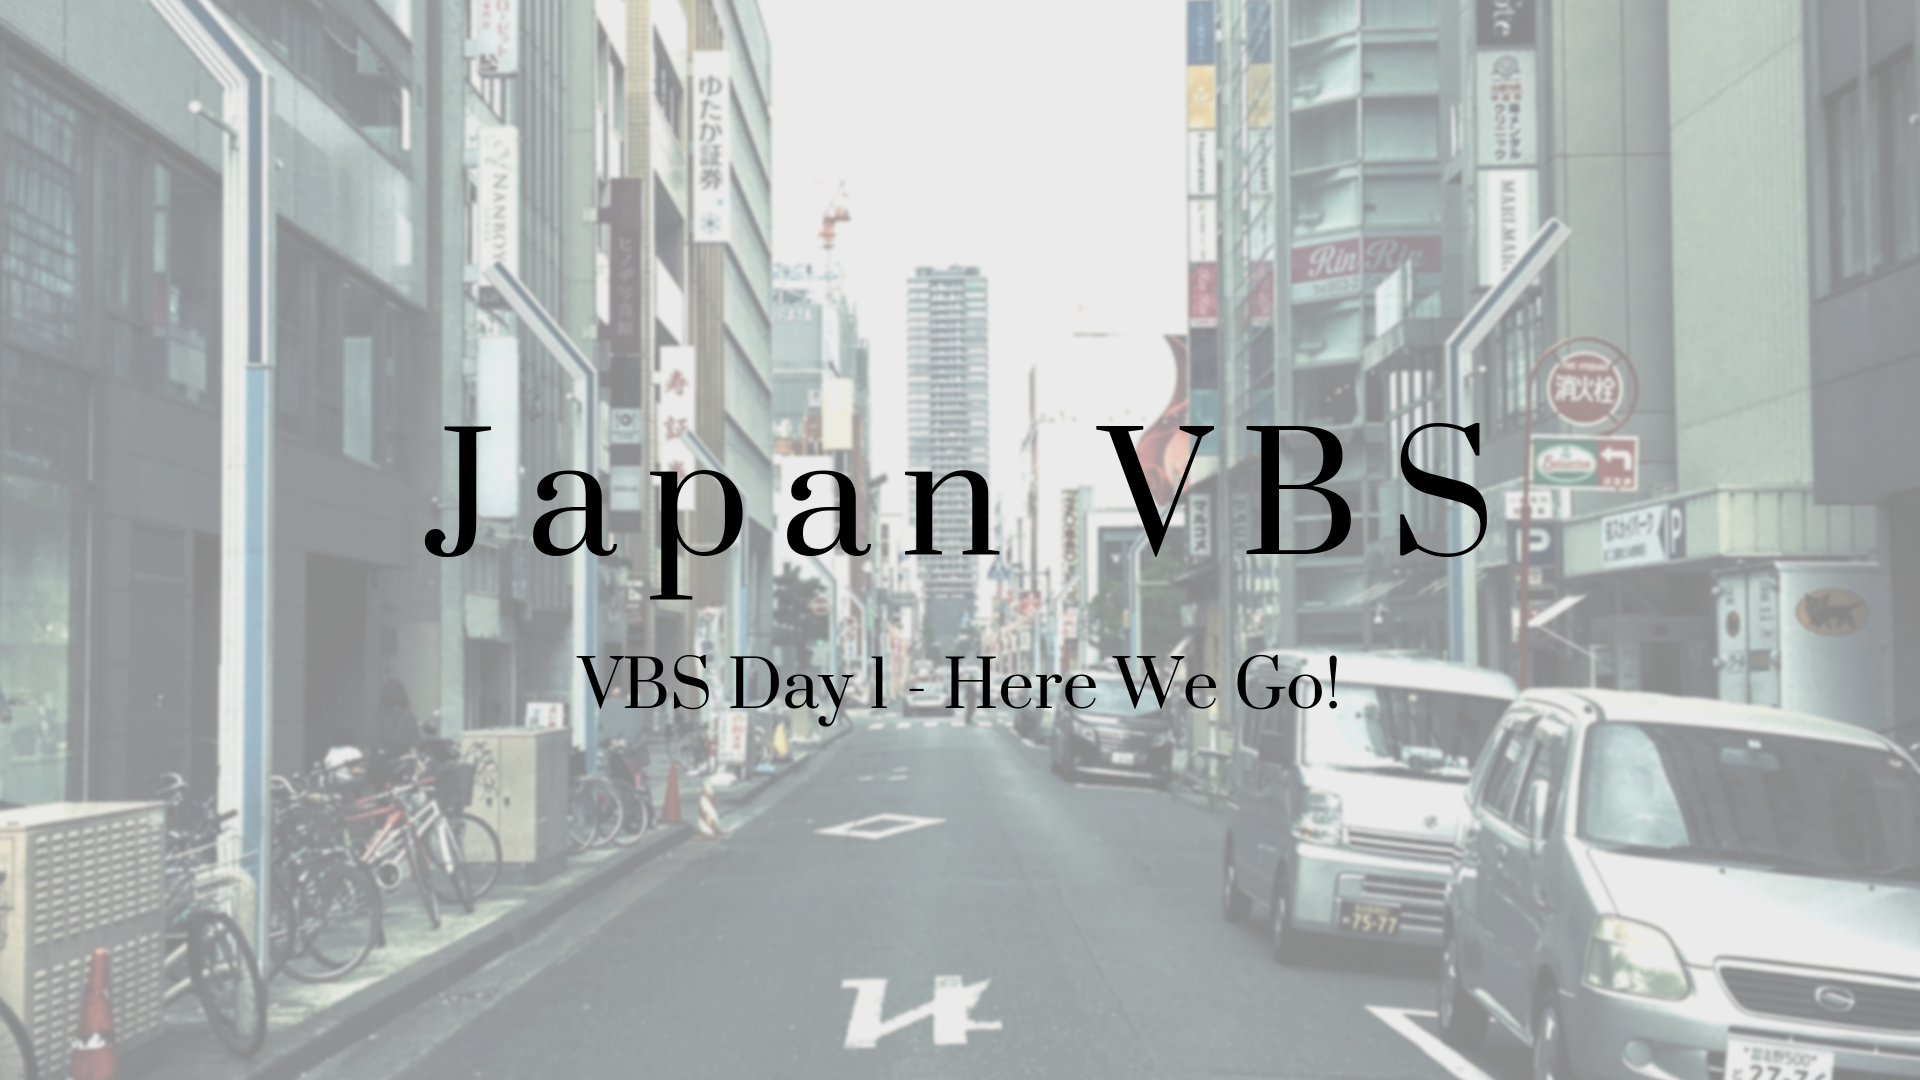 2019 Japan VBS: Day 1 - Here We Go!